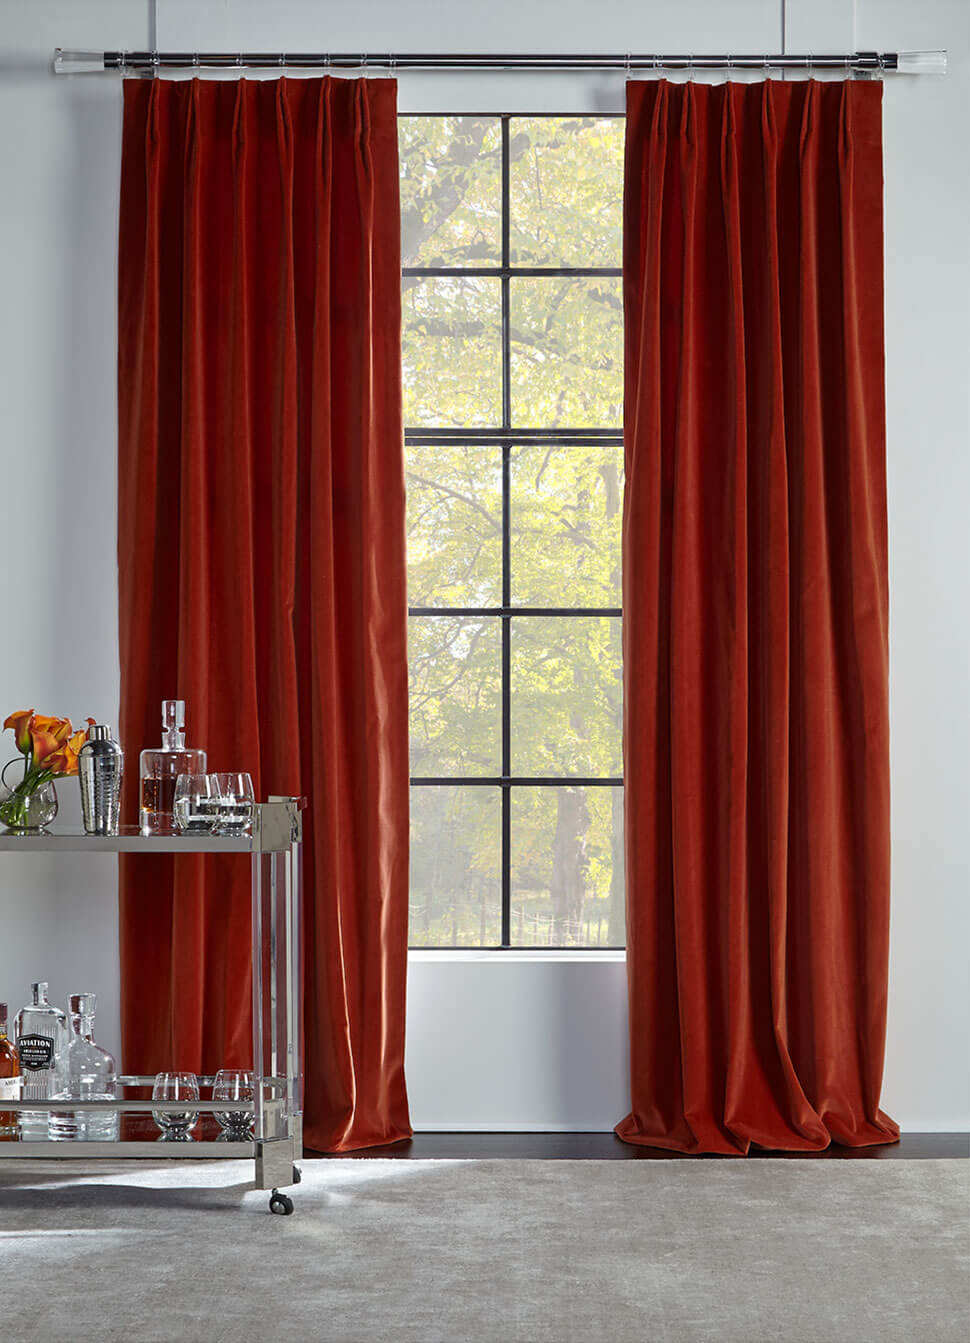 Avignon drapery collection: Velvet